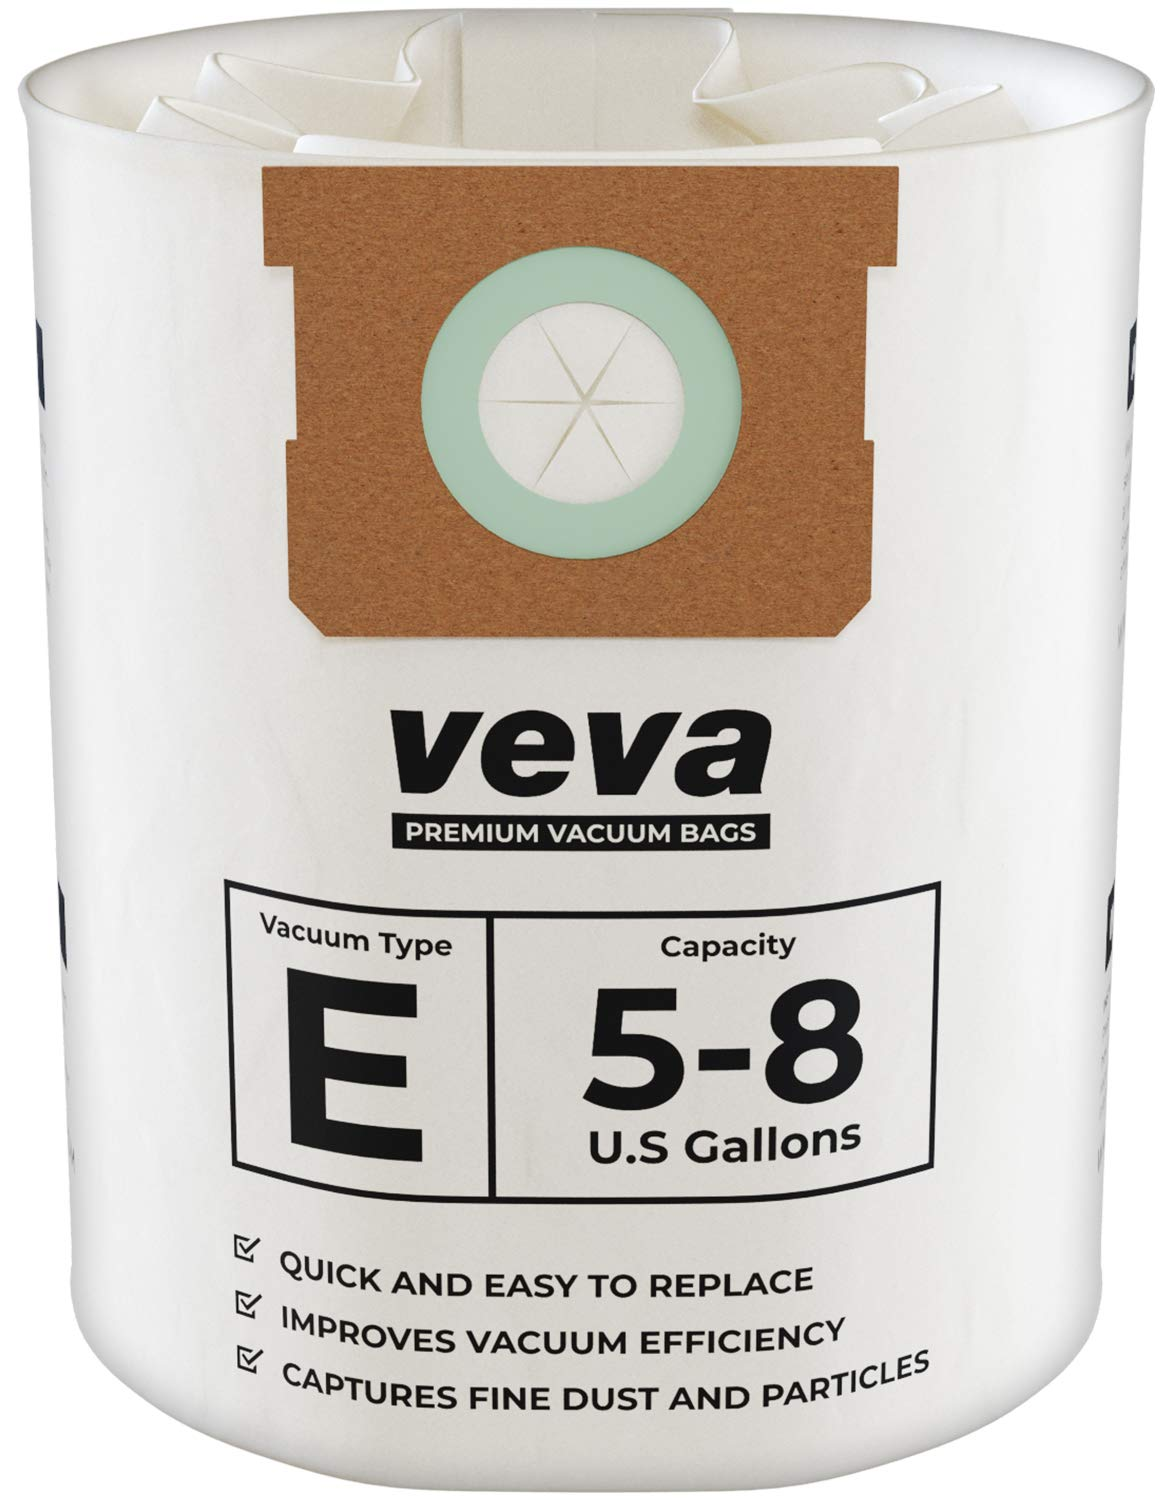 VEVA 15 Pack Premium Vacuum Filter Bags Type E 9066100 Work with Shop Vac 5-8 Gallon Vacuum, Part # SV 90661 by VEVA